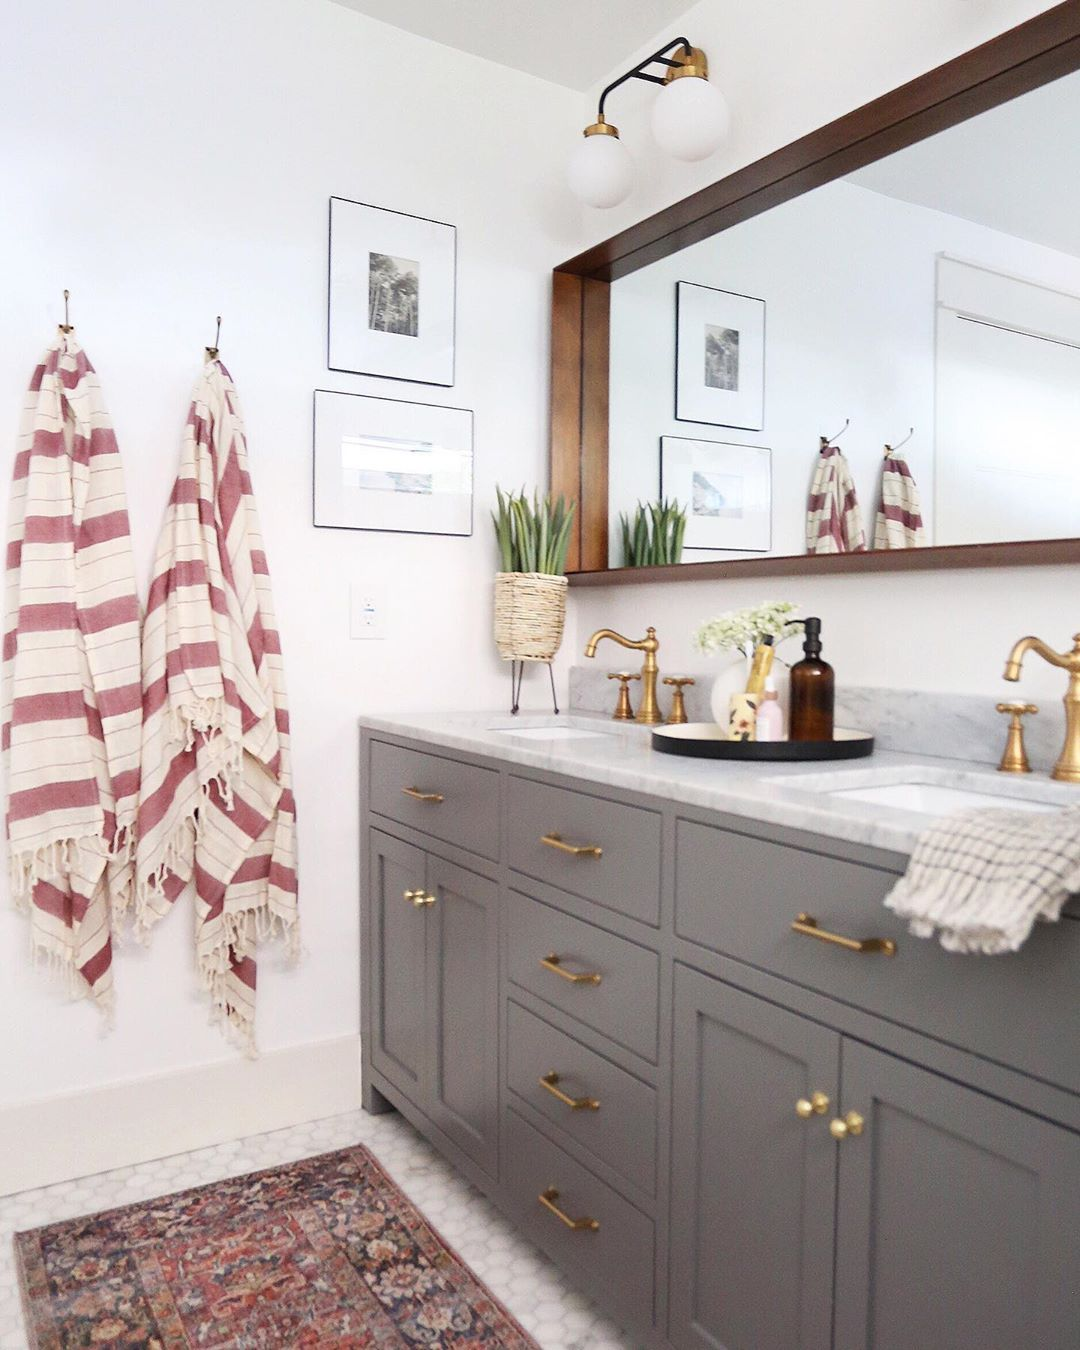 Juniper Home On Instagram The Master Bathroom Of The Evergreen Project Was One Of Our Favorite Transformations Juniper Home Master Bathroom Bathroom Sconces